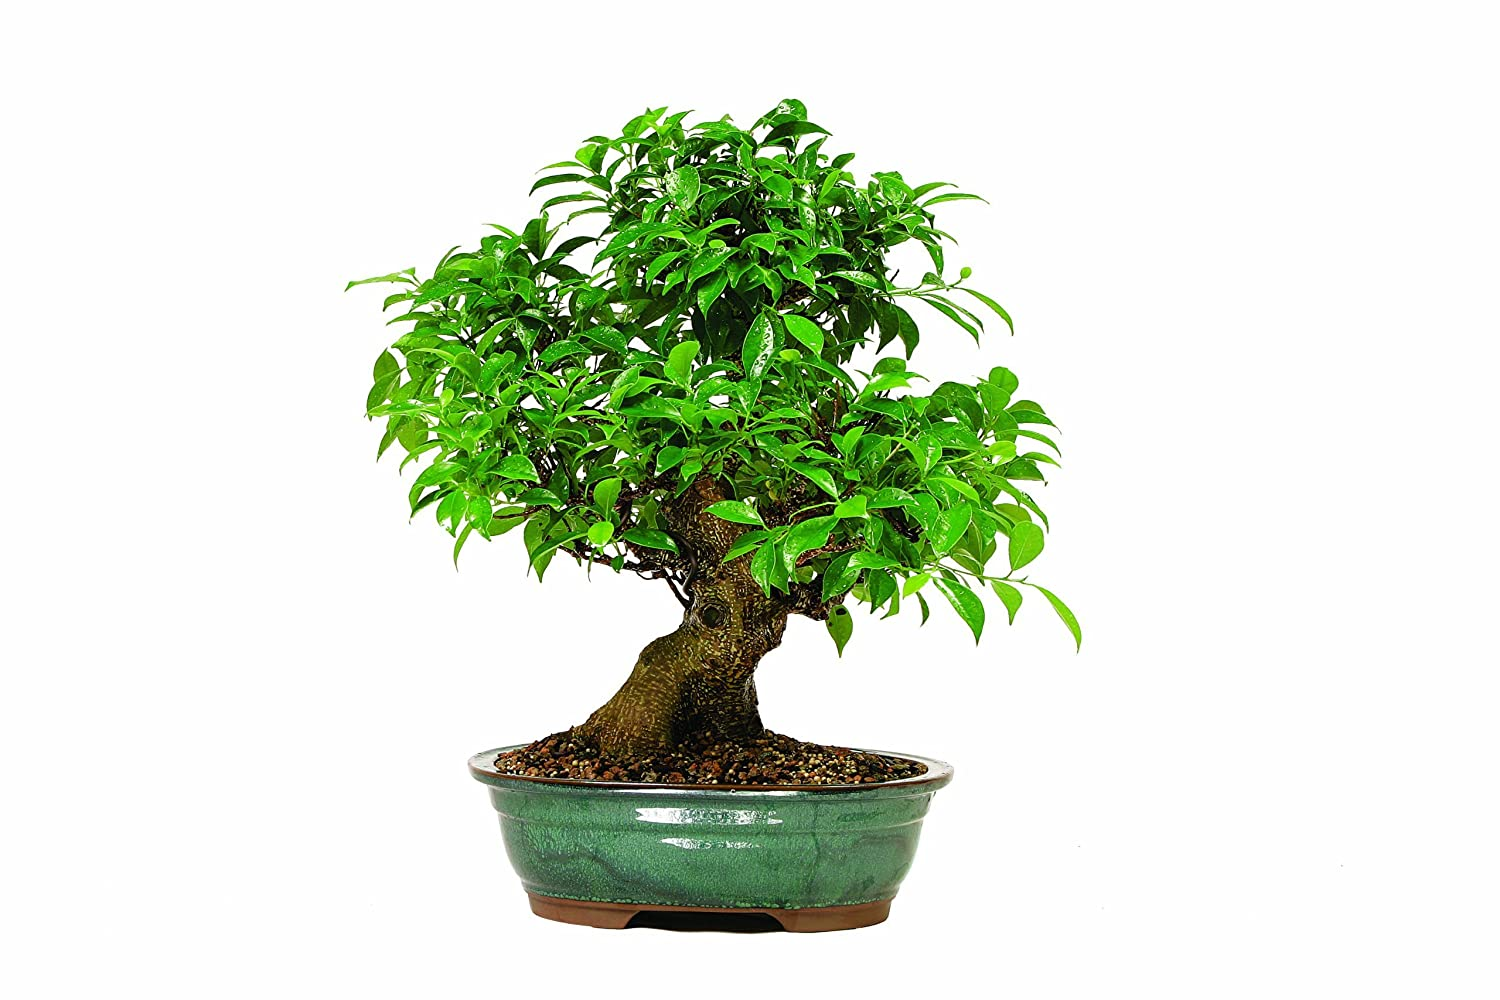 ficus bonsai tree a tropical indoor plant with green leaves. Black Bedroom Furniture Sets. Home Design Ideas